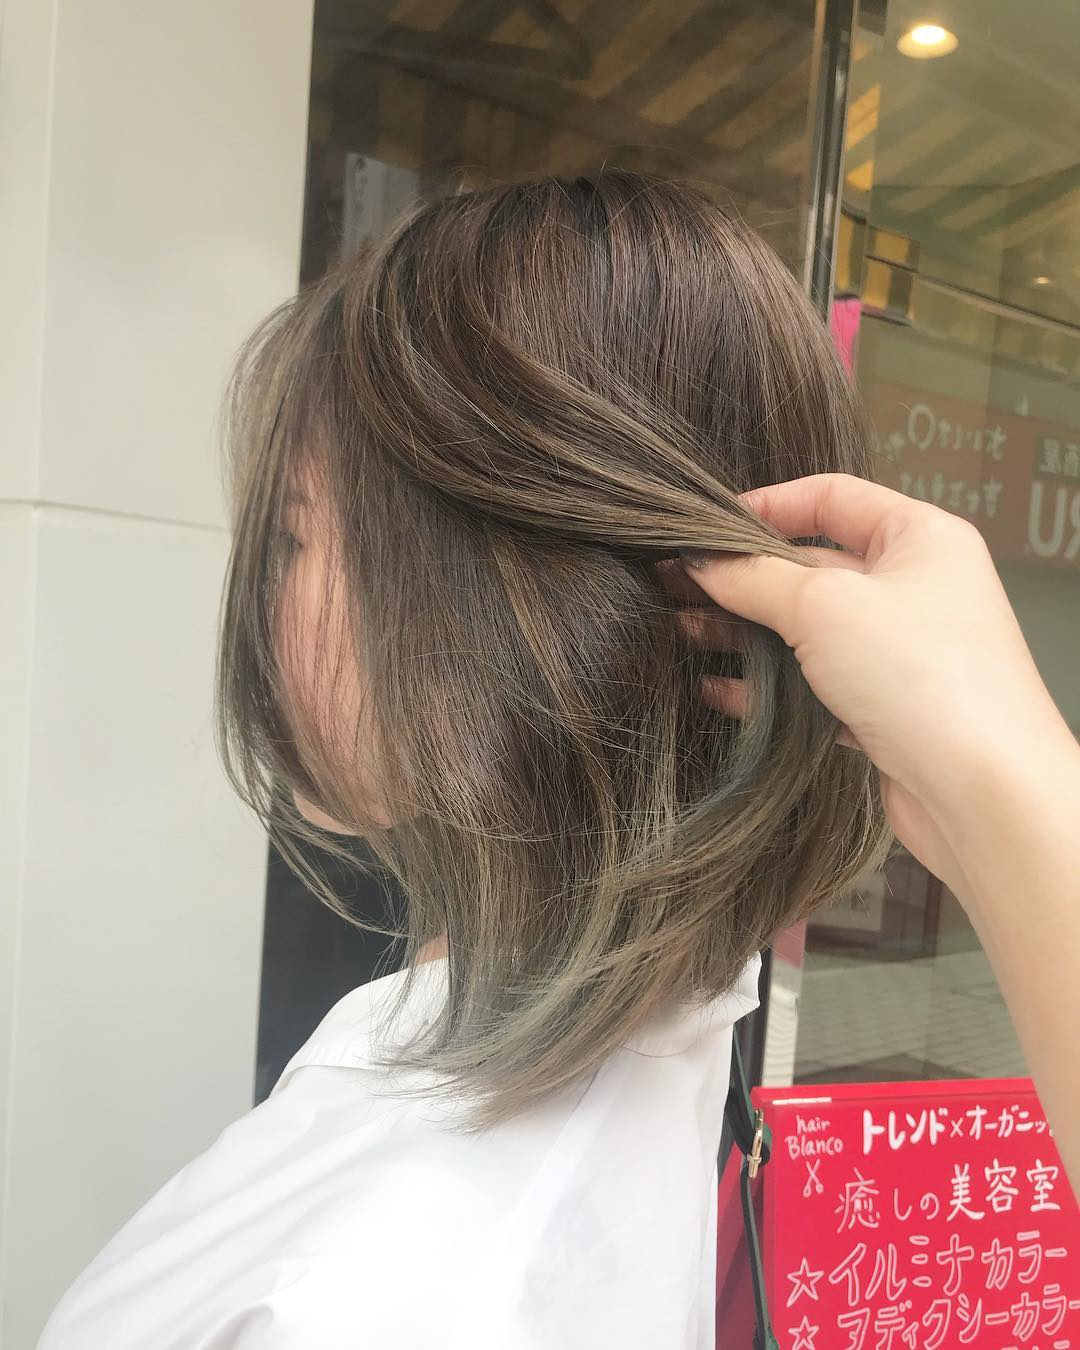 10 Japanese Hairstyles For A Fresh New Look This Summer